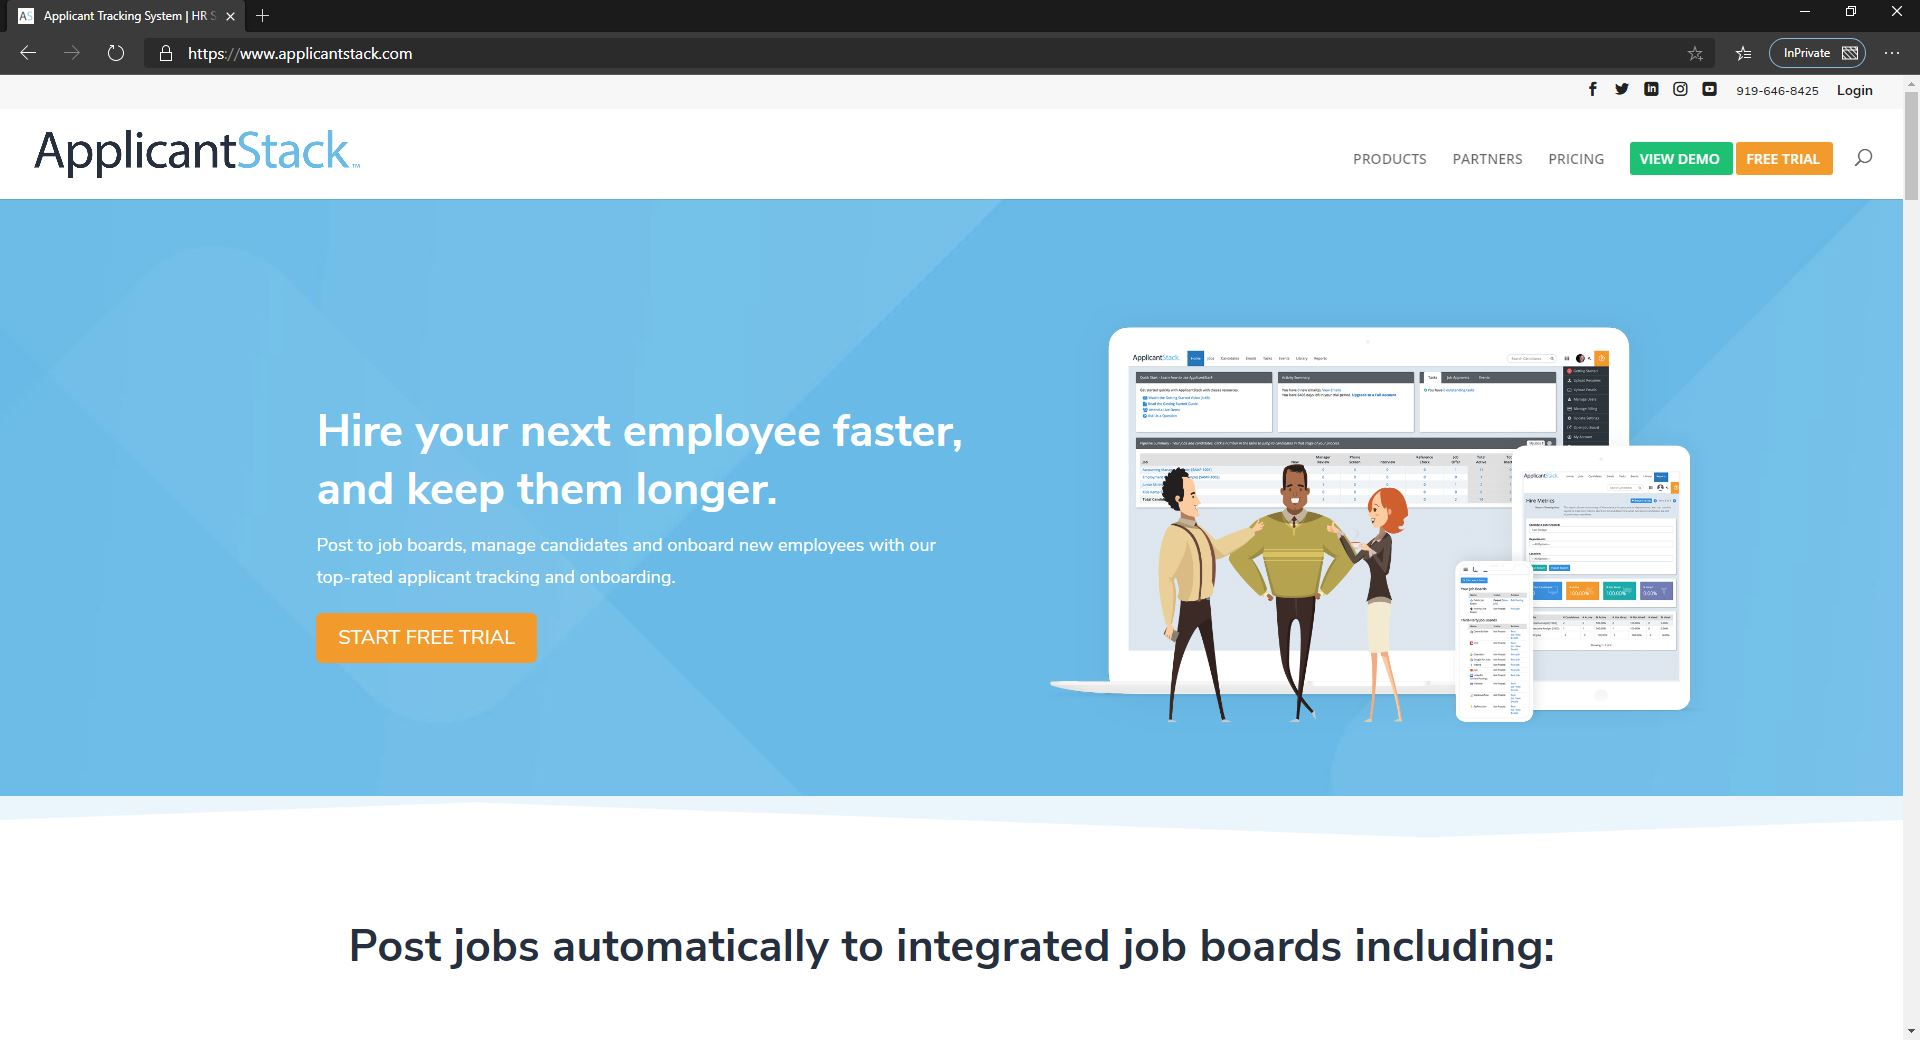 10 Best Recruiting Software For Small Businesses & Startups Companies-Applicant Stack-Fig 1